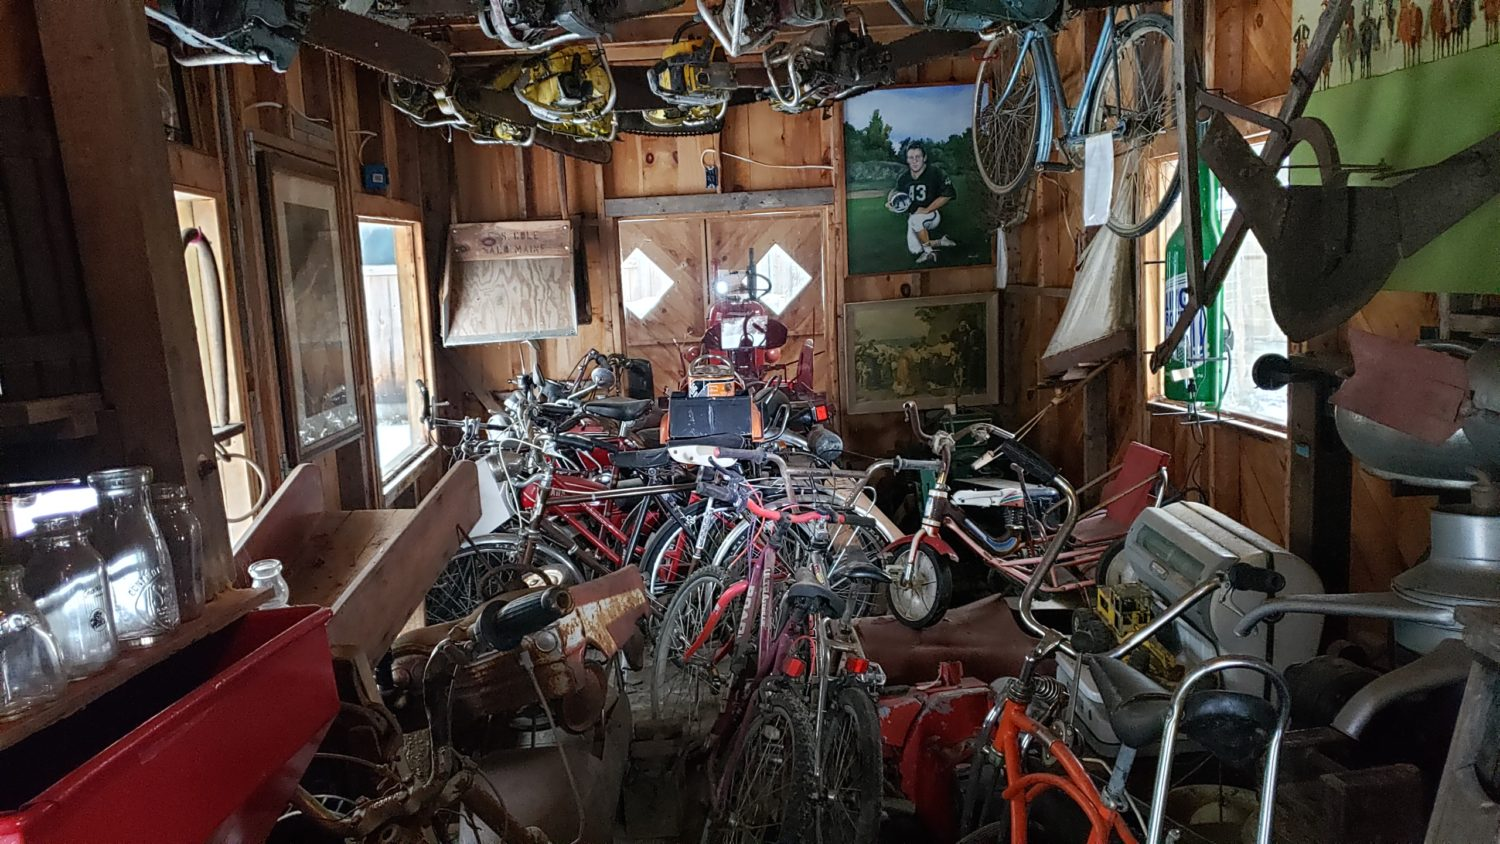 AMAZING Indian Motorcycle Hoard, Race Cars, Collector Car, Collectibles & More!  - image 16